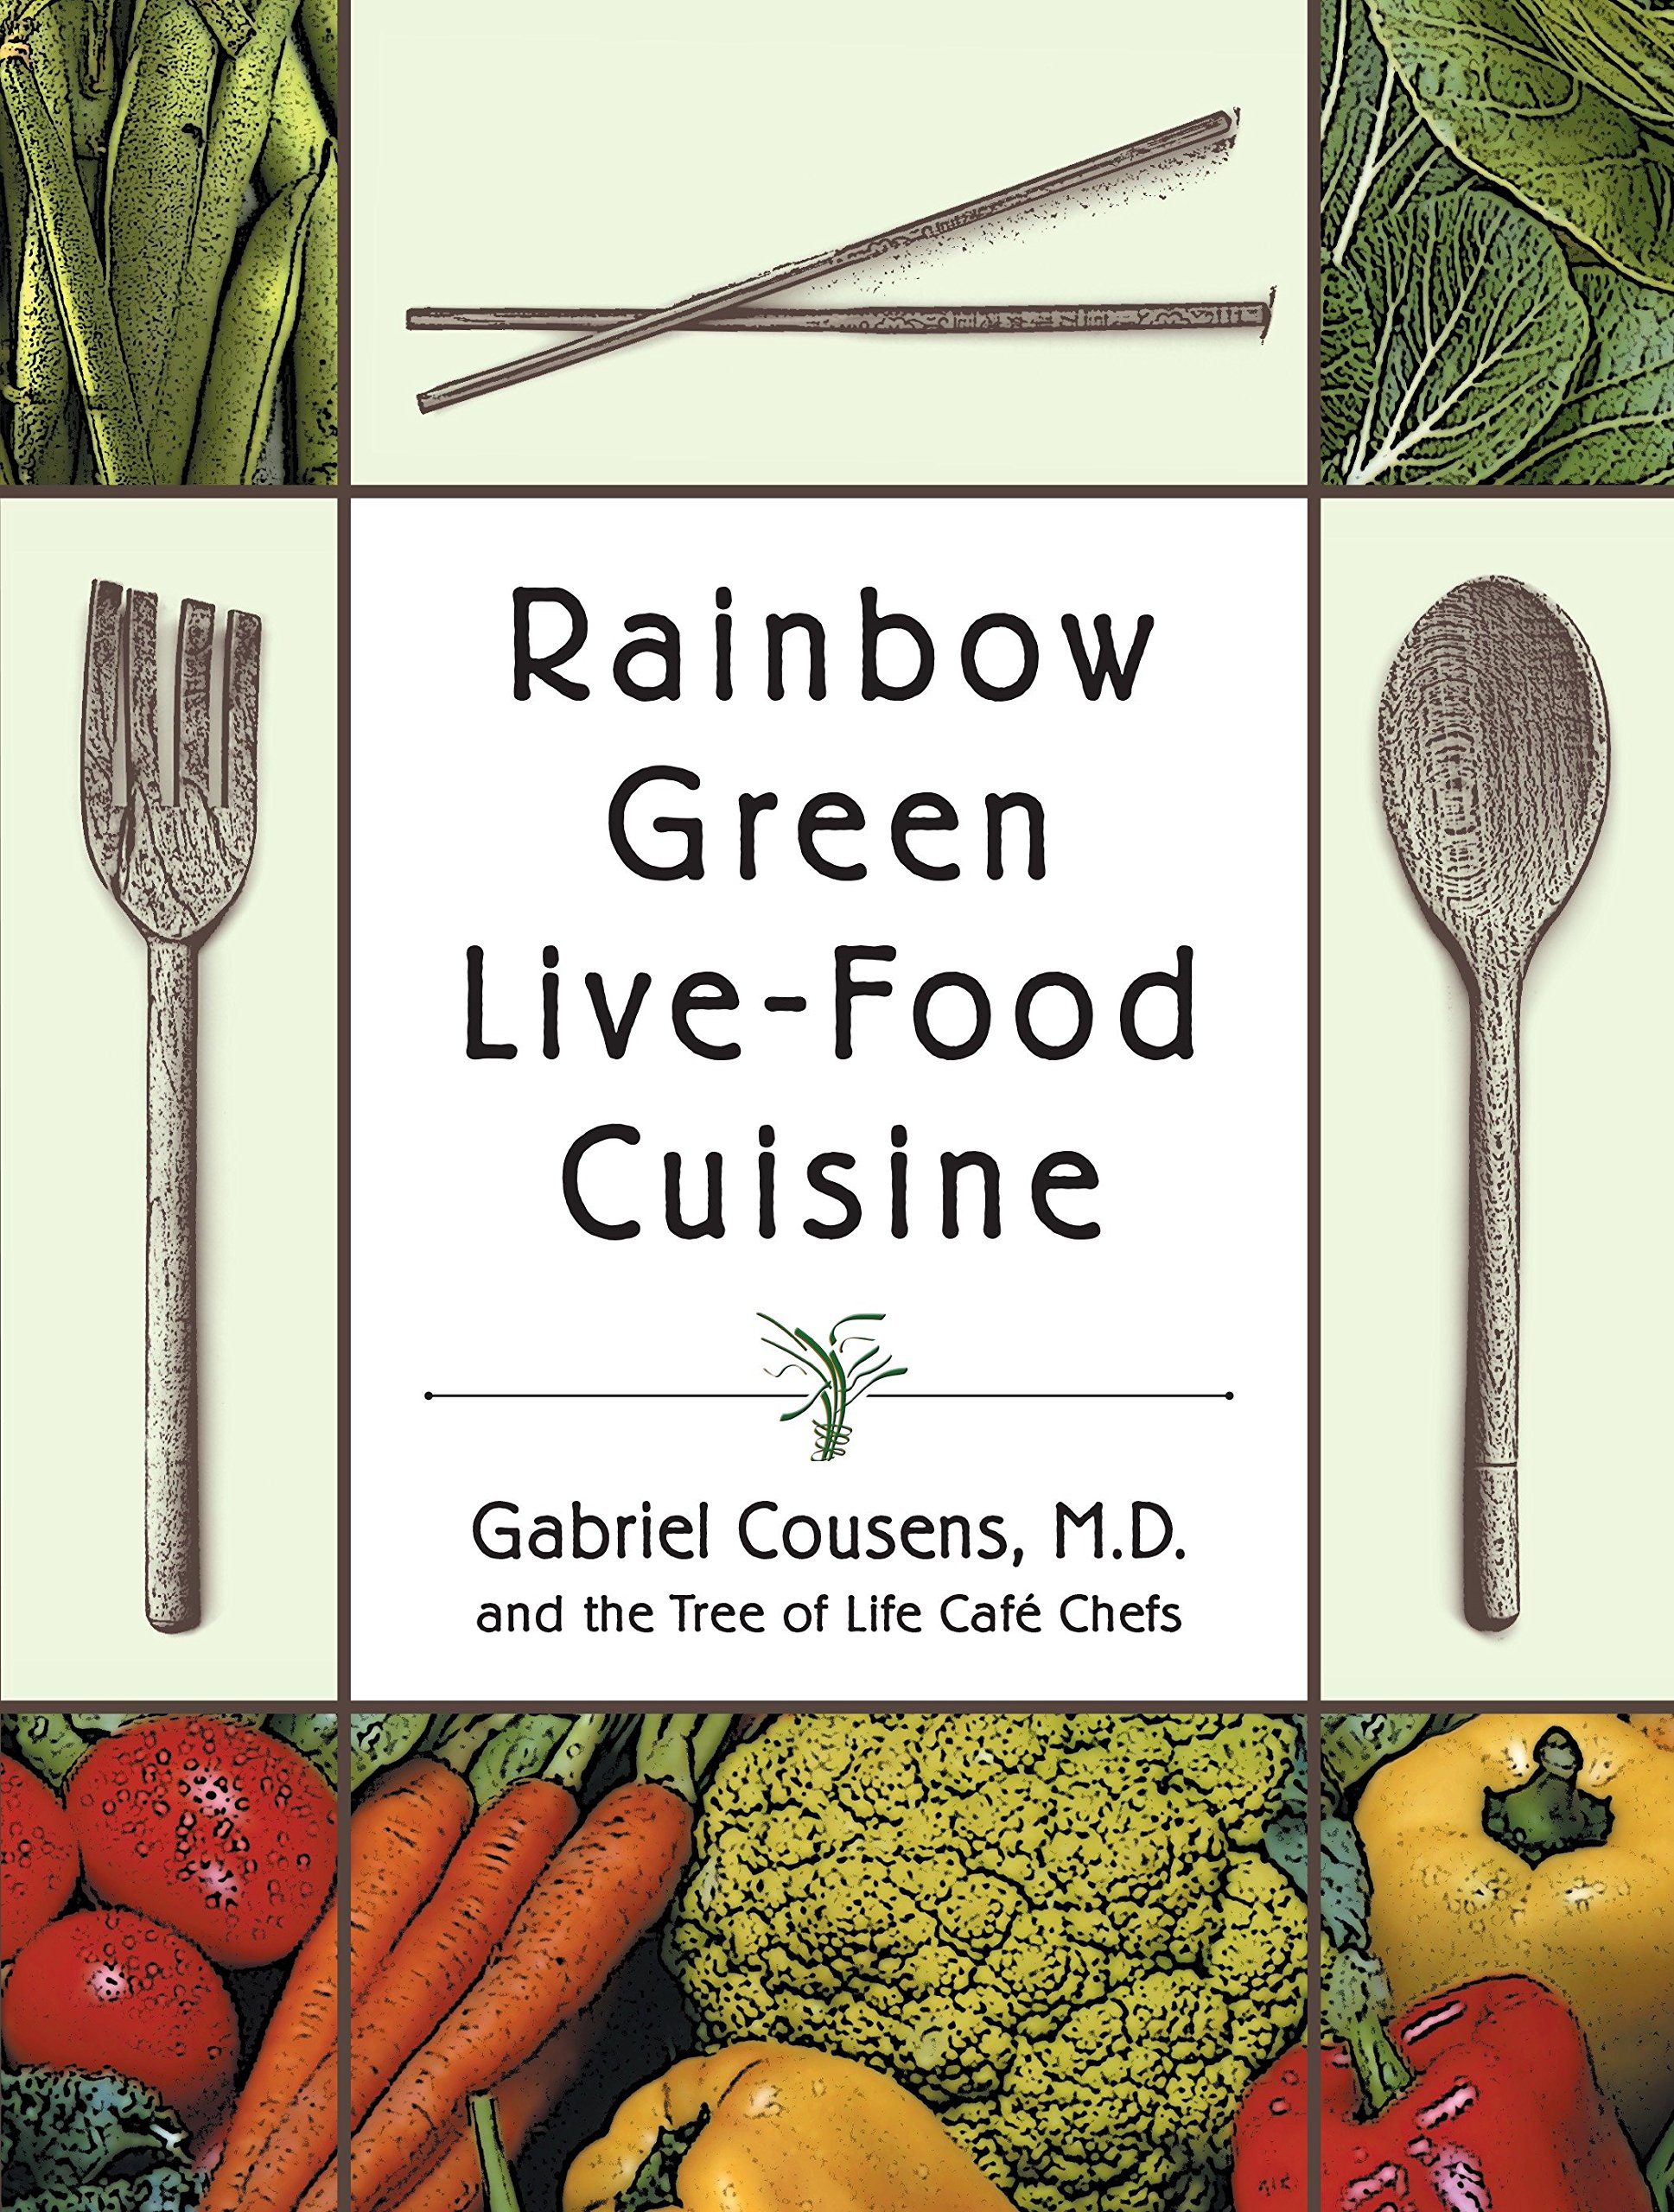 rainbow green live-food cuisine - By Gabriel Cousens M.D.What a blessing it is to nourish our babies with organic living foods that will strengthen them physically, mentally, emotionally, and spiritually. Not only is it possible; it is optimal. Babies are so full of life force and develop at such a miraculous rate. A well-balanced, 100% raw, organic diet of fruit, vegetables, nuts, and seeds provides them with the uncompromised nourishment that will support them in creating a lifetime of well-being. This excellent Appendix from Rainbow Green Live Food Cuisine by Gabriel Cousens, M.D. will make much more accessible the best diet possible for the children in your life. For the actual recipes, make sure to add the book to your kitchen library.